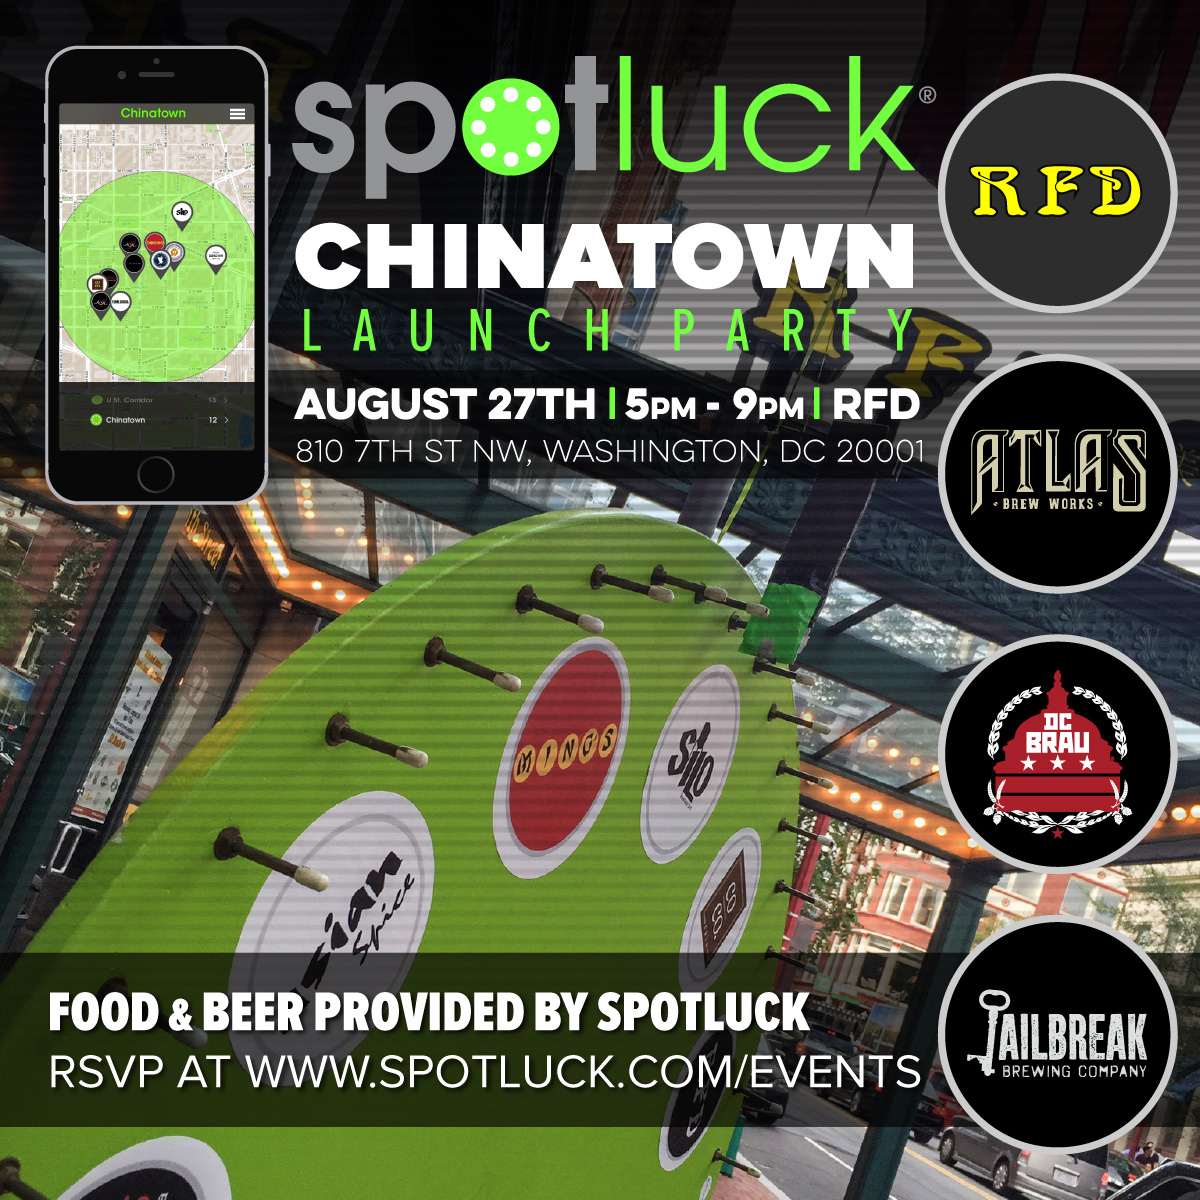 chinatown-launch-party-spotluck